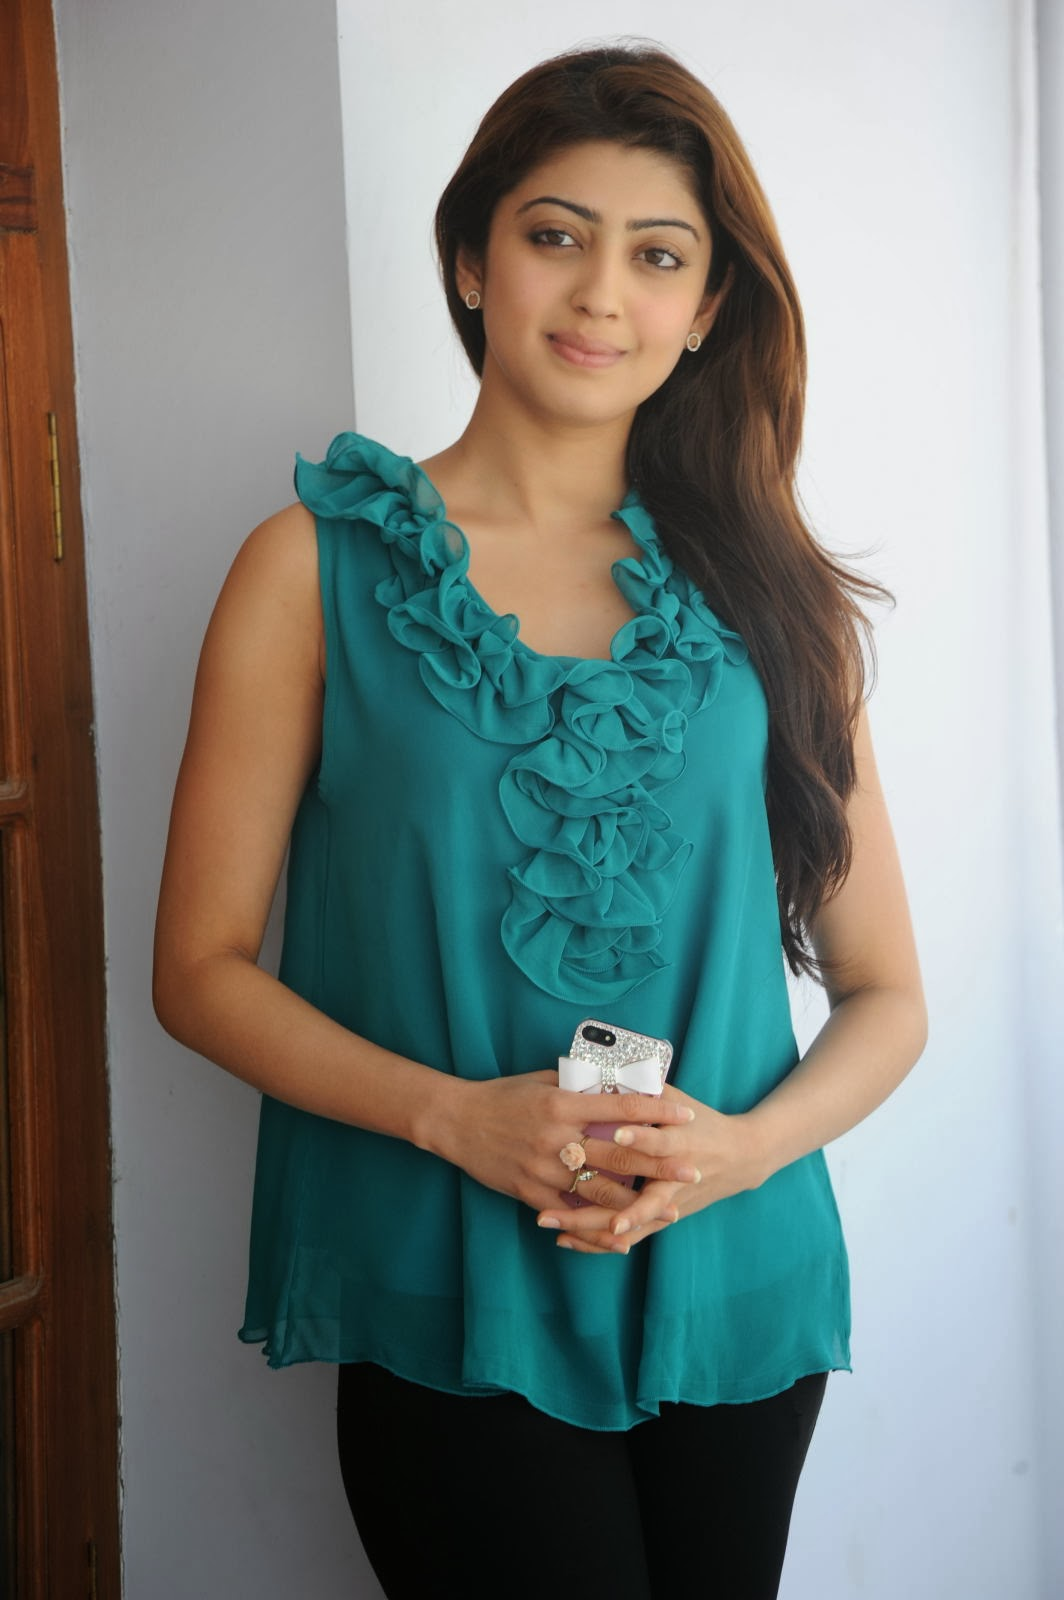 Praneetha Photos at Attarintiki Daredi Movie Interview, Actress